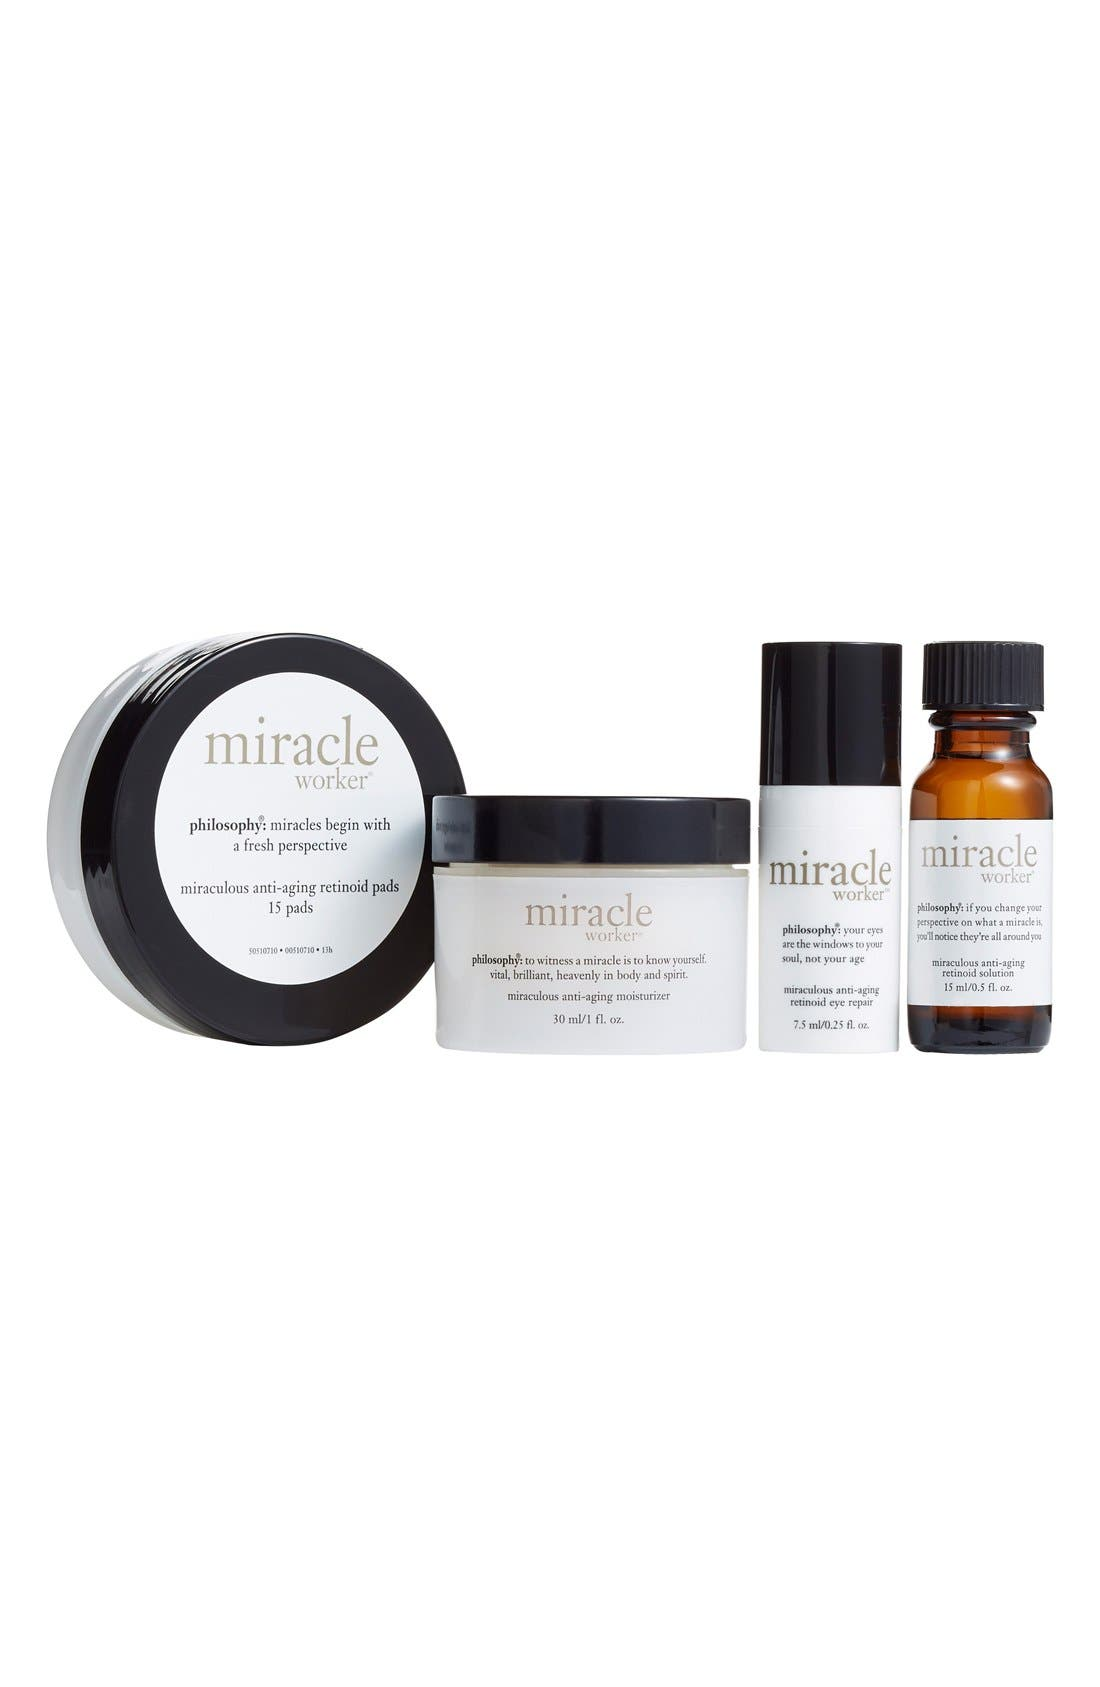 philosophy 'miracle worker' trial kit